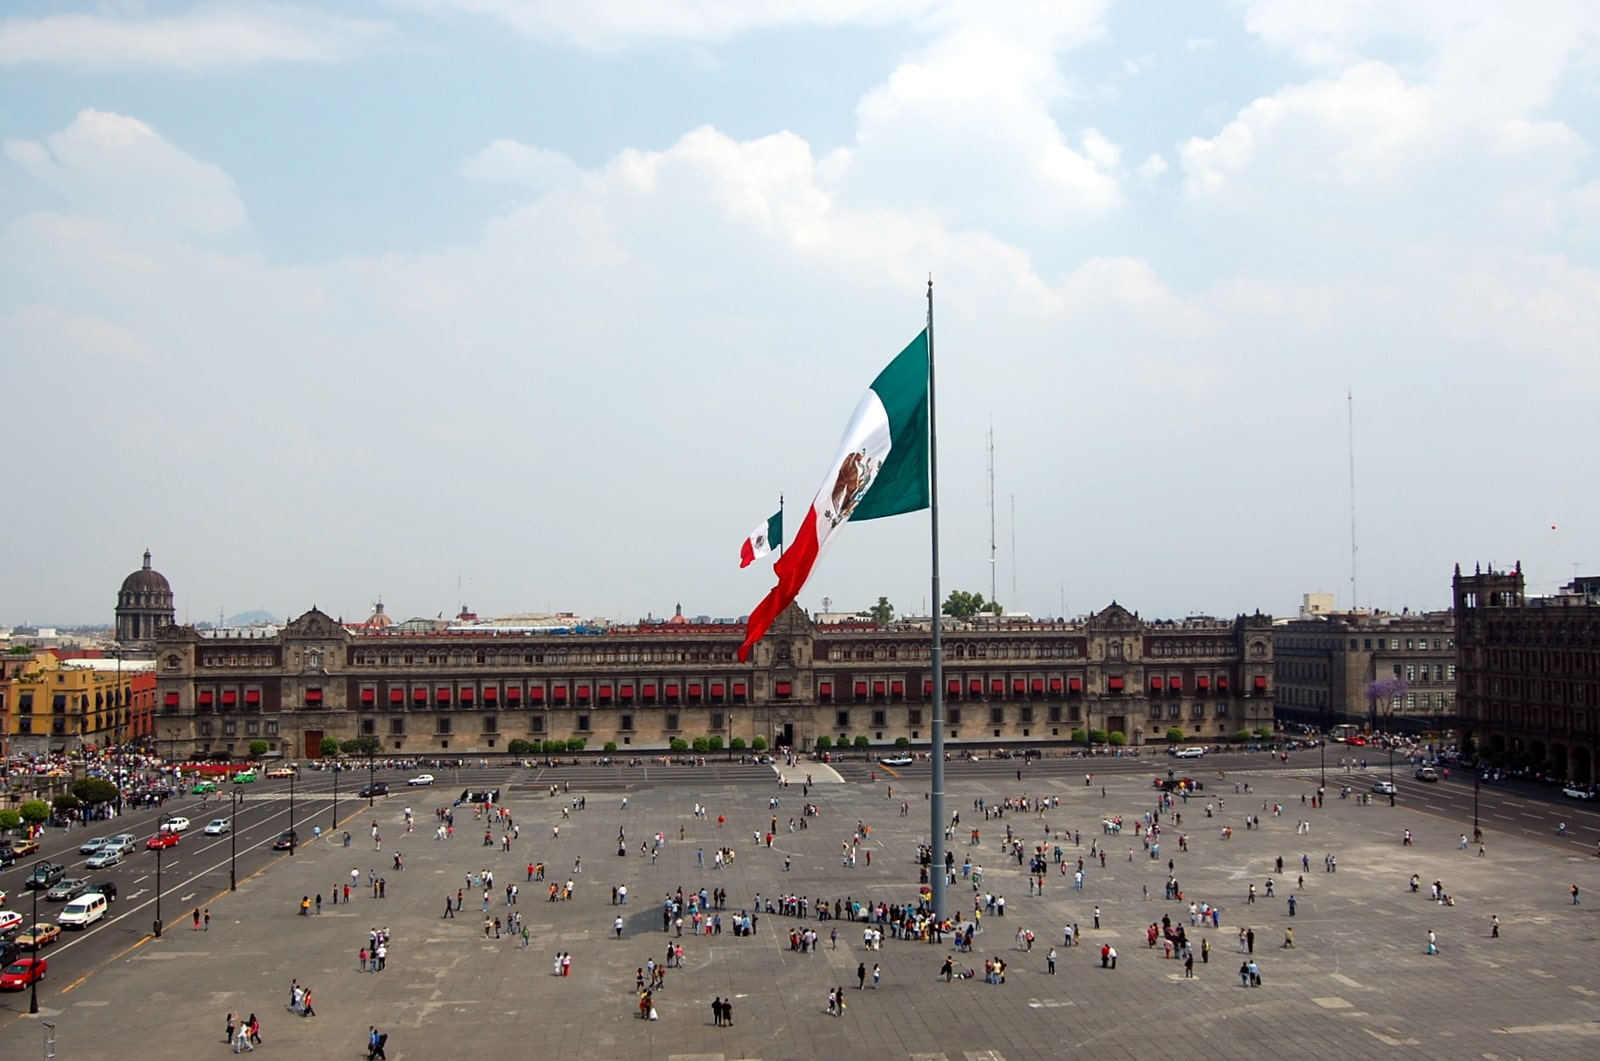 Zocalo is one of the best Mexico City landmarks